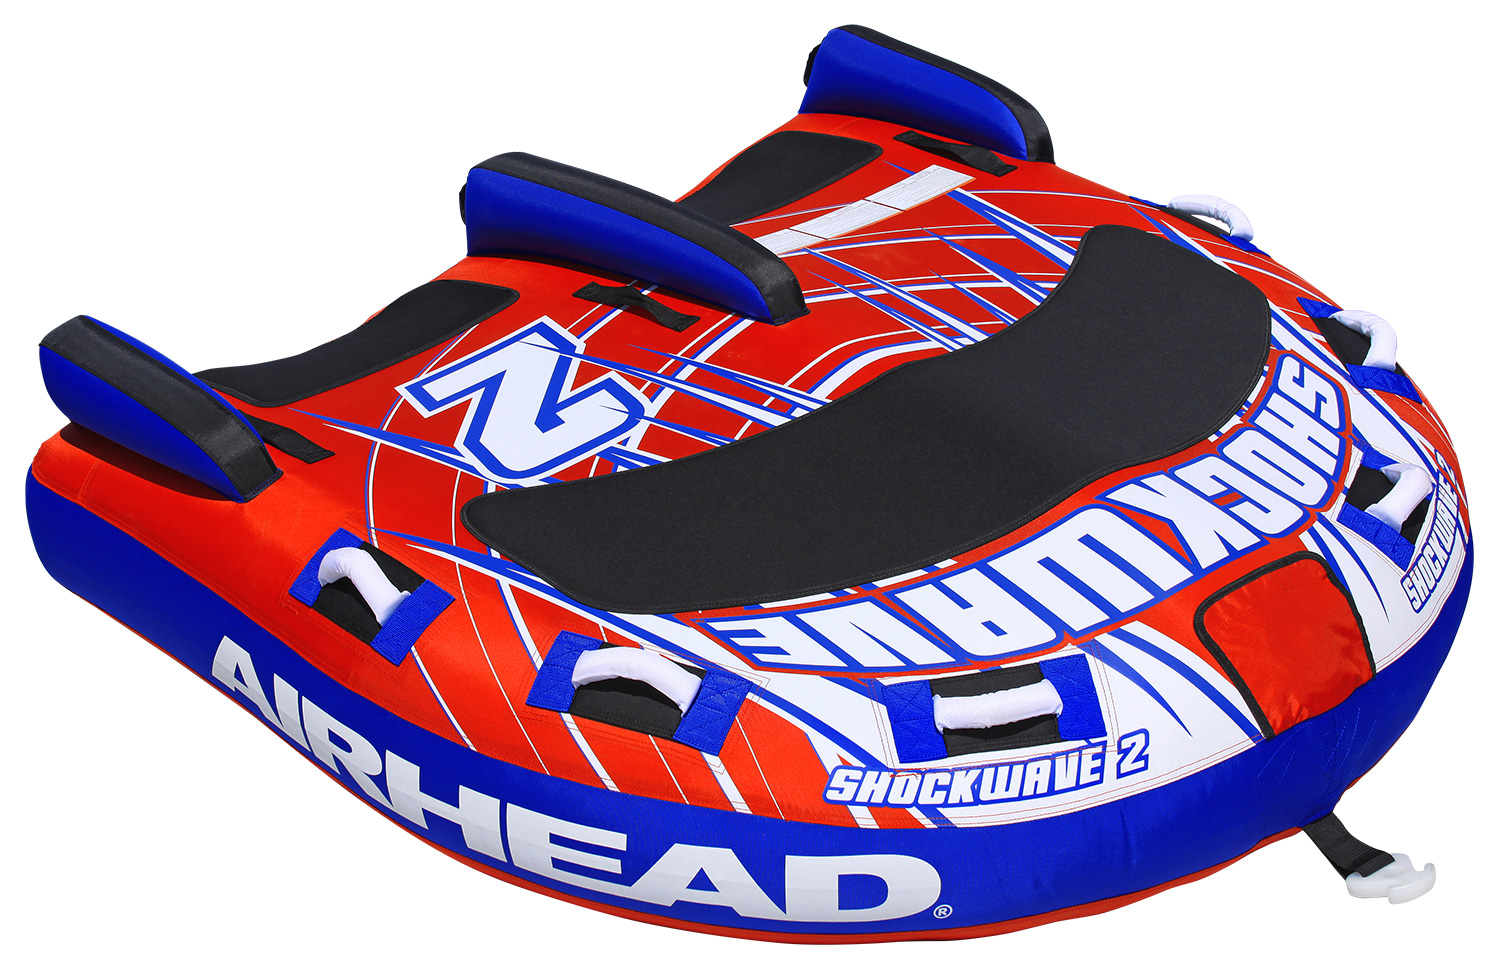 SHOCKWAVE 2 Towable Tube by AIRHEAD SPORTS GROUP